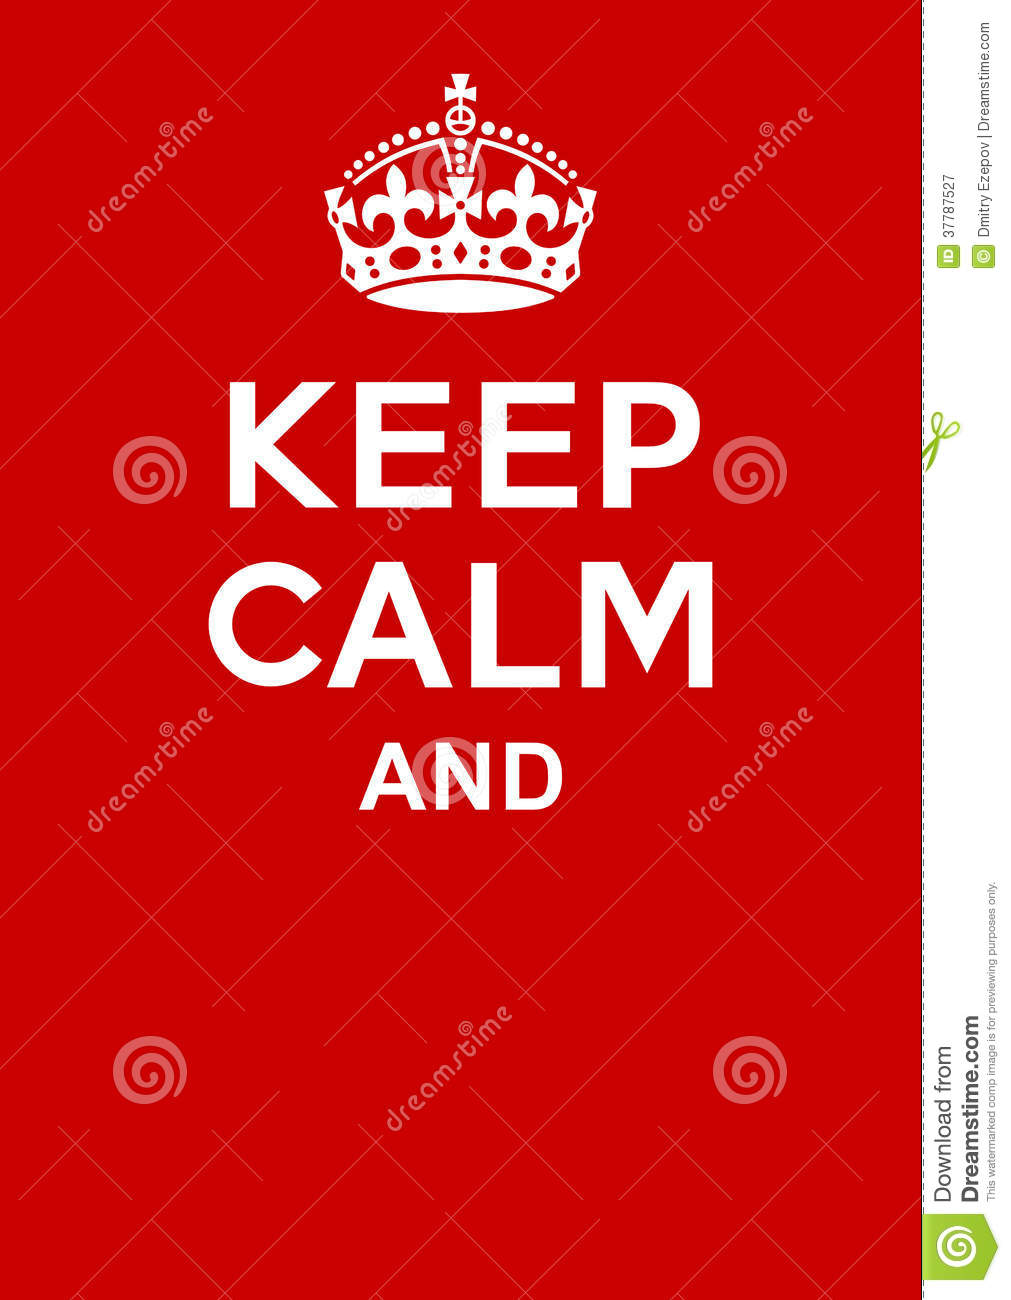 Keep Calm And Carry On Clipart - Clipart Kid